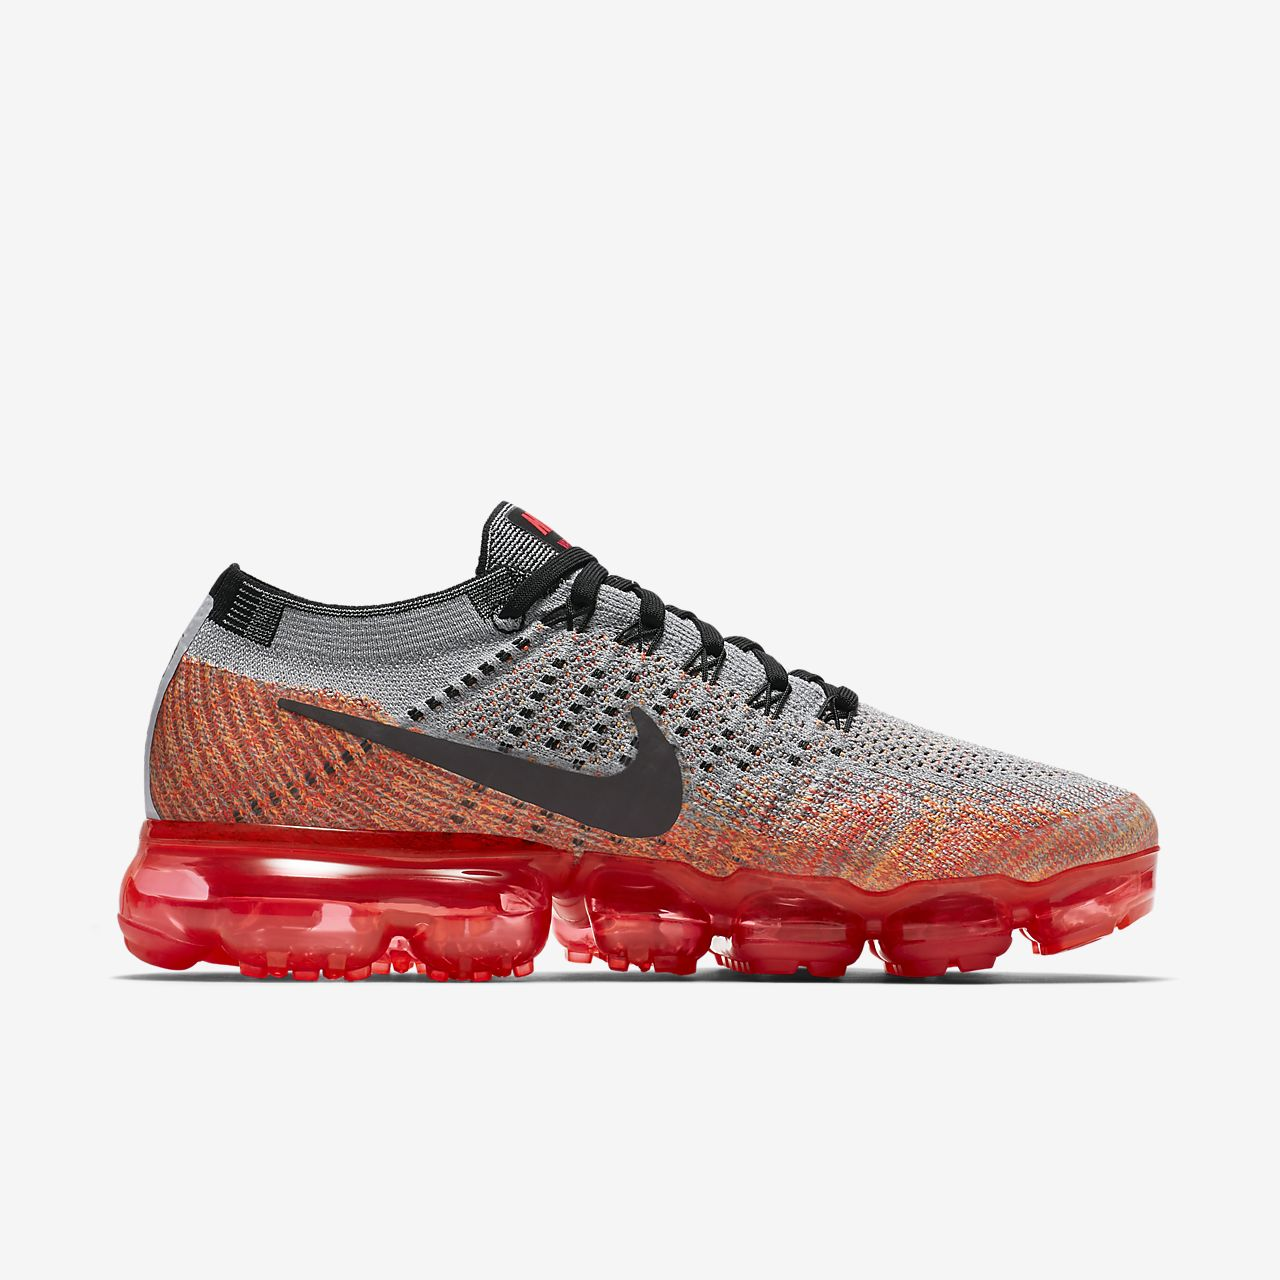 Nike Air Vapormax Flyknit Launching 26th March.